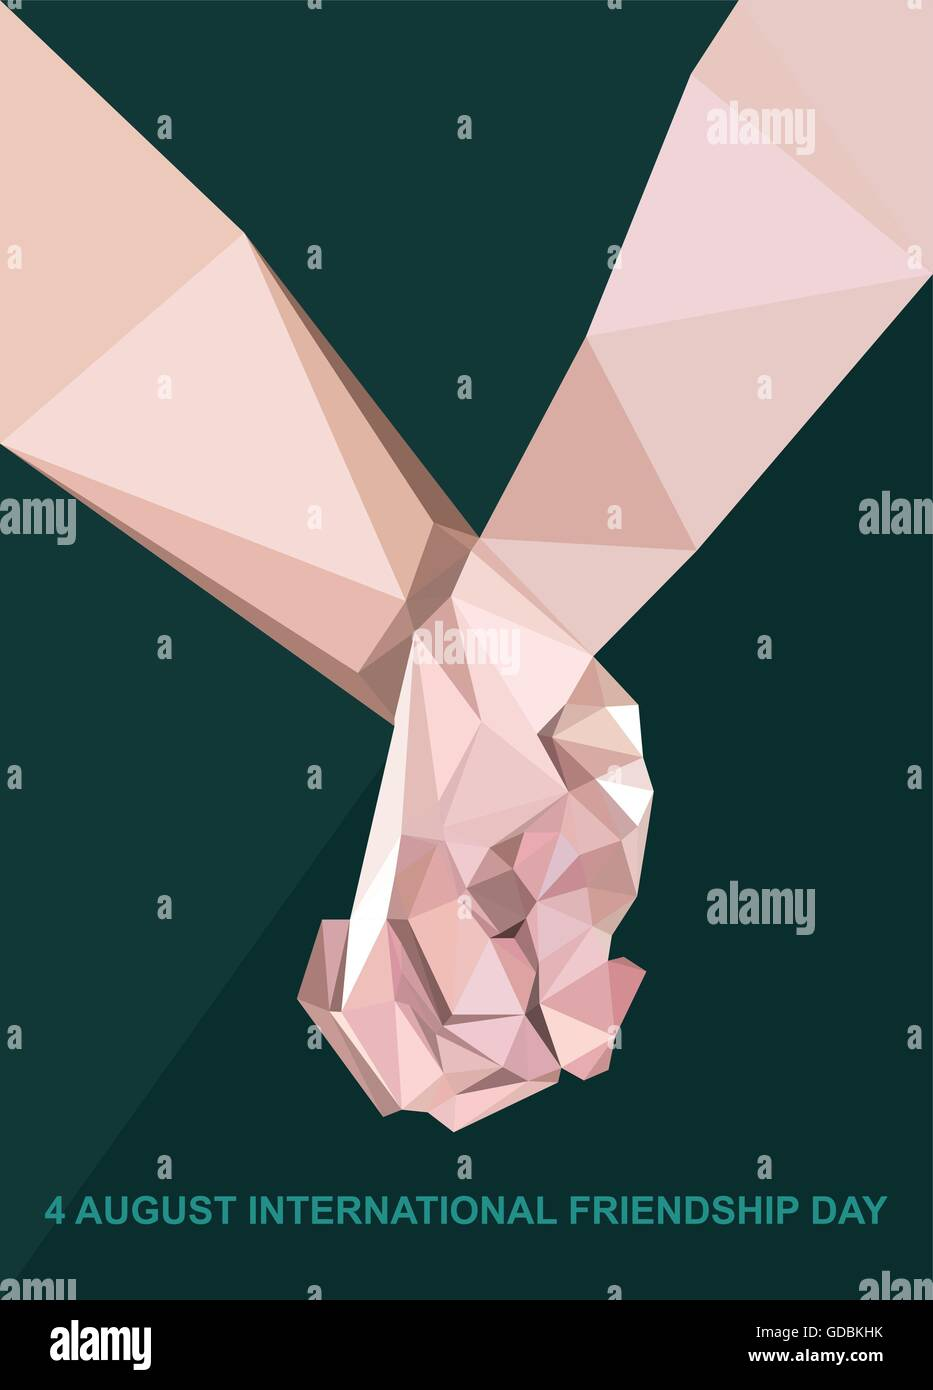 Happy Friendship Day Card 4 August Best Friends Two Shaking Hands Symbol Digital Vector Image